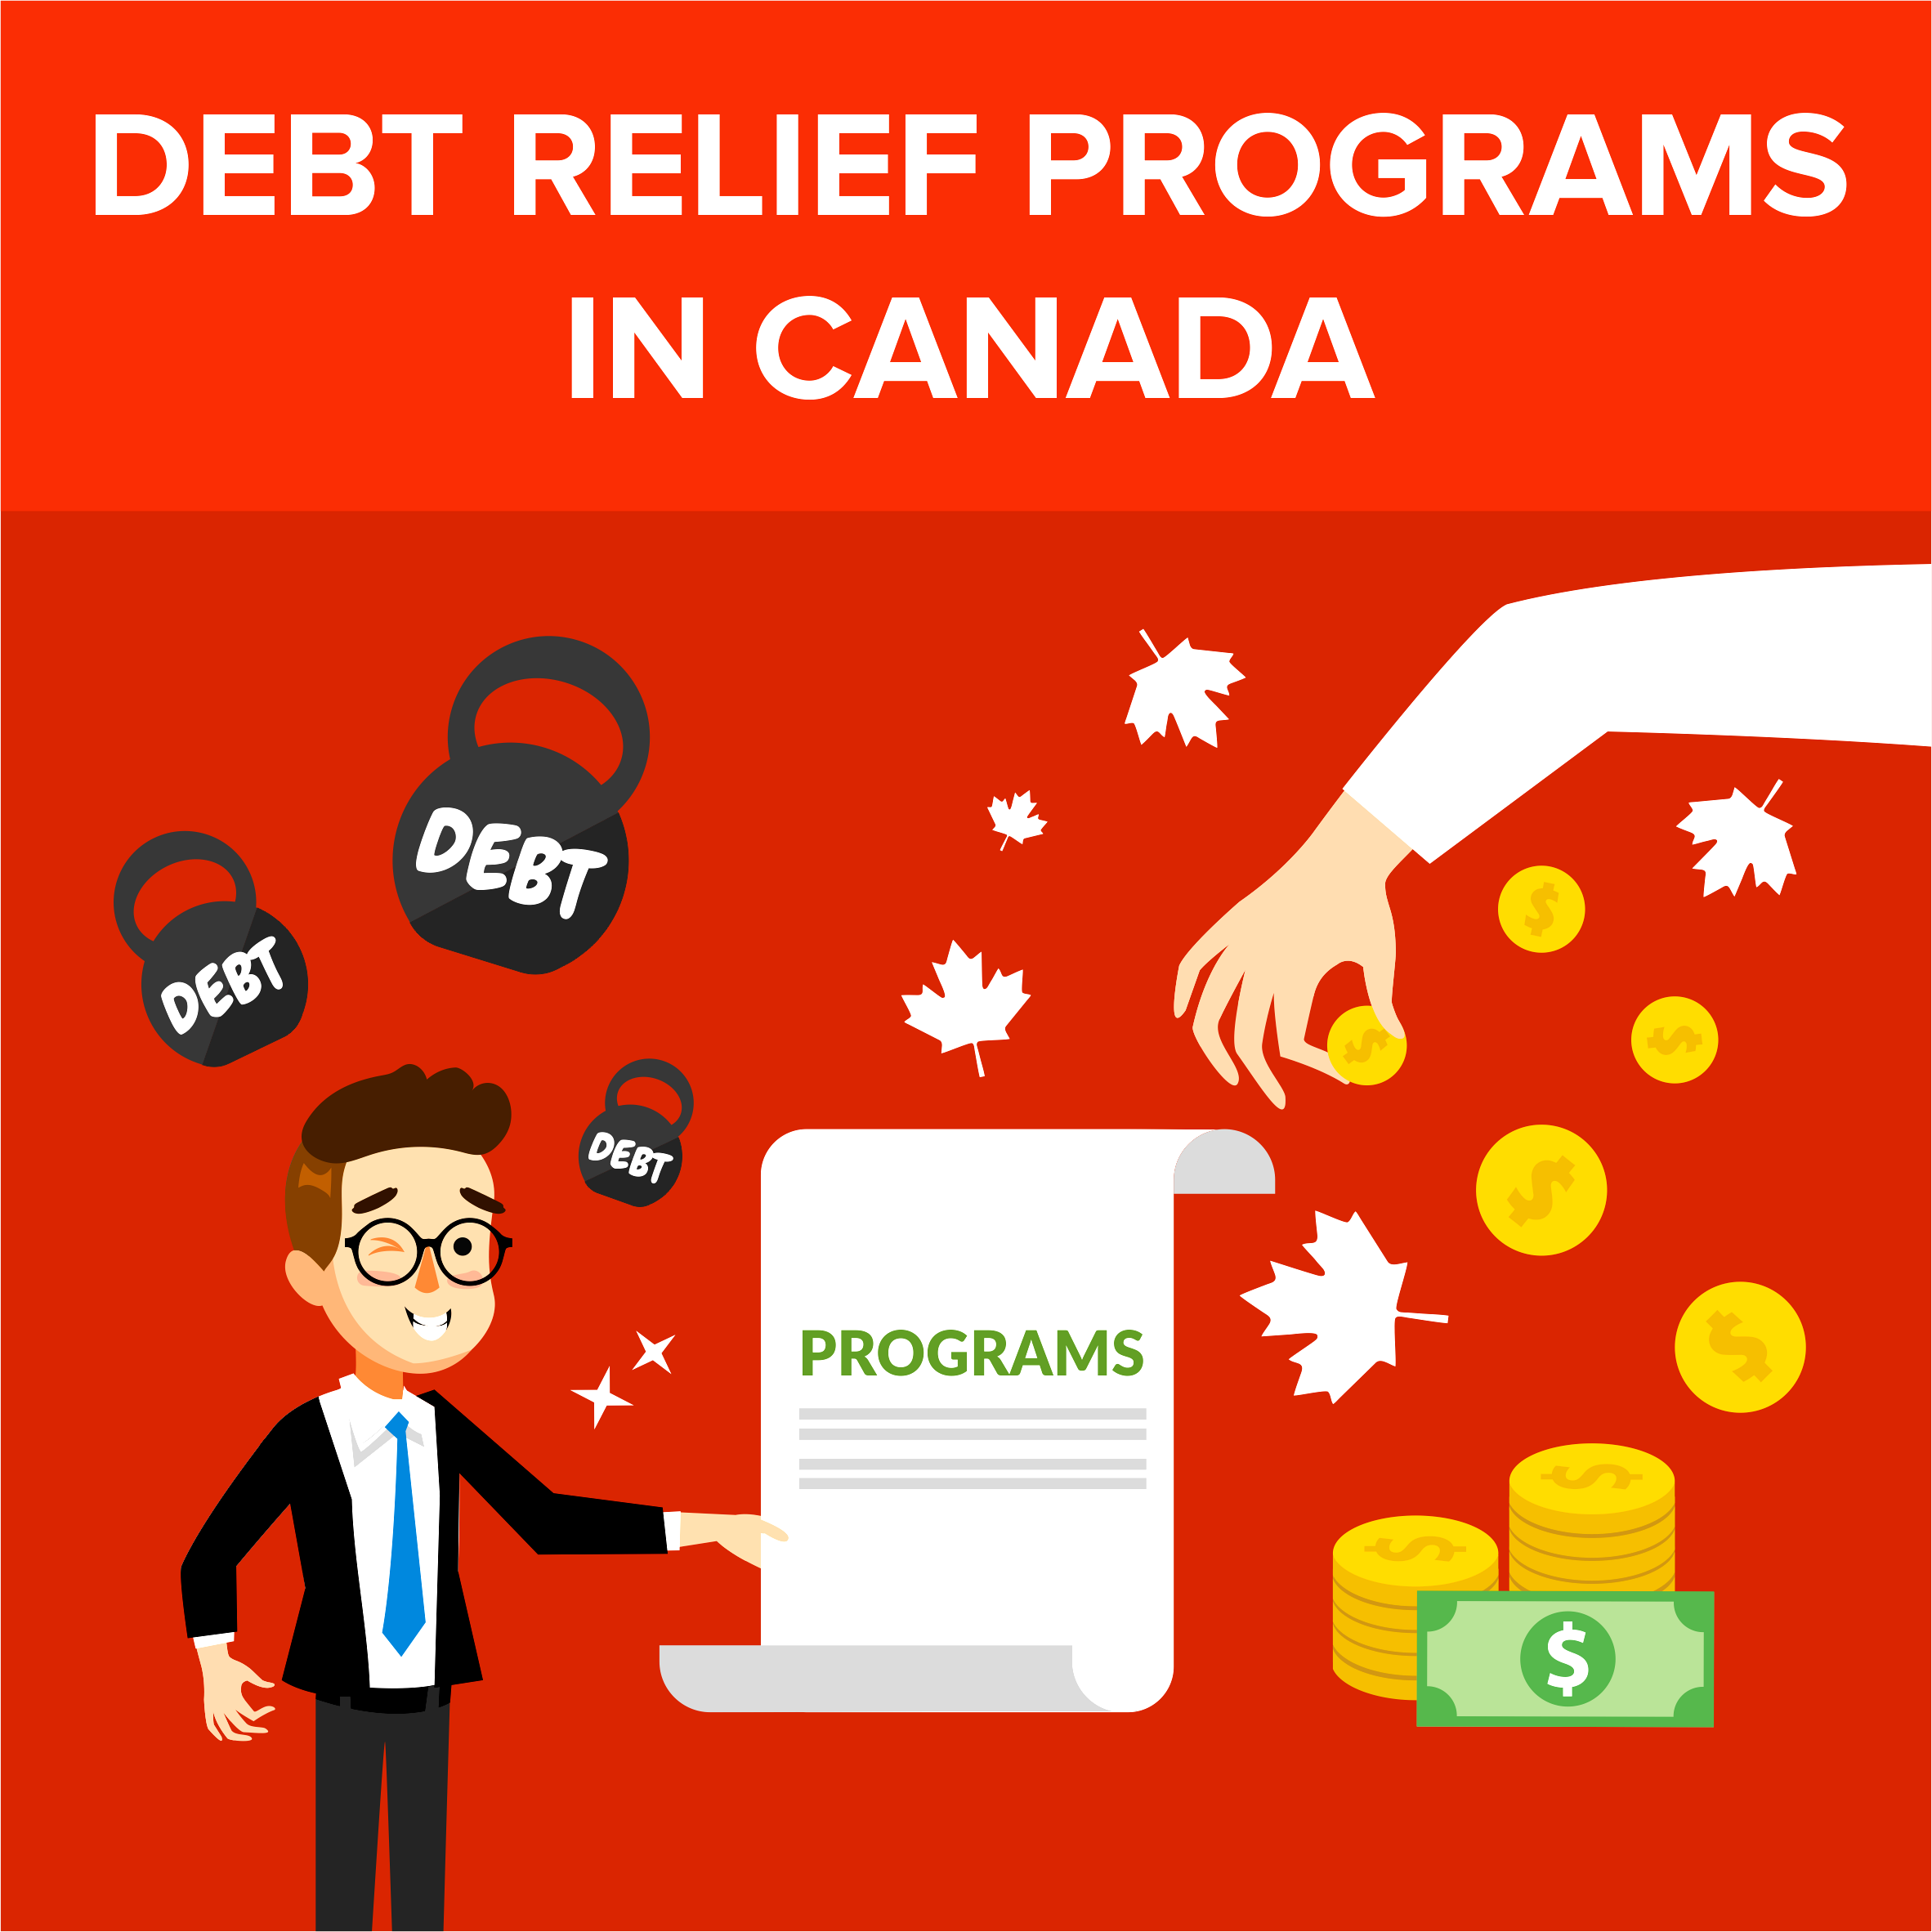 Debt Relief Programs in Canada